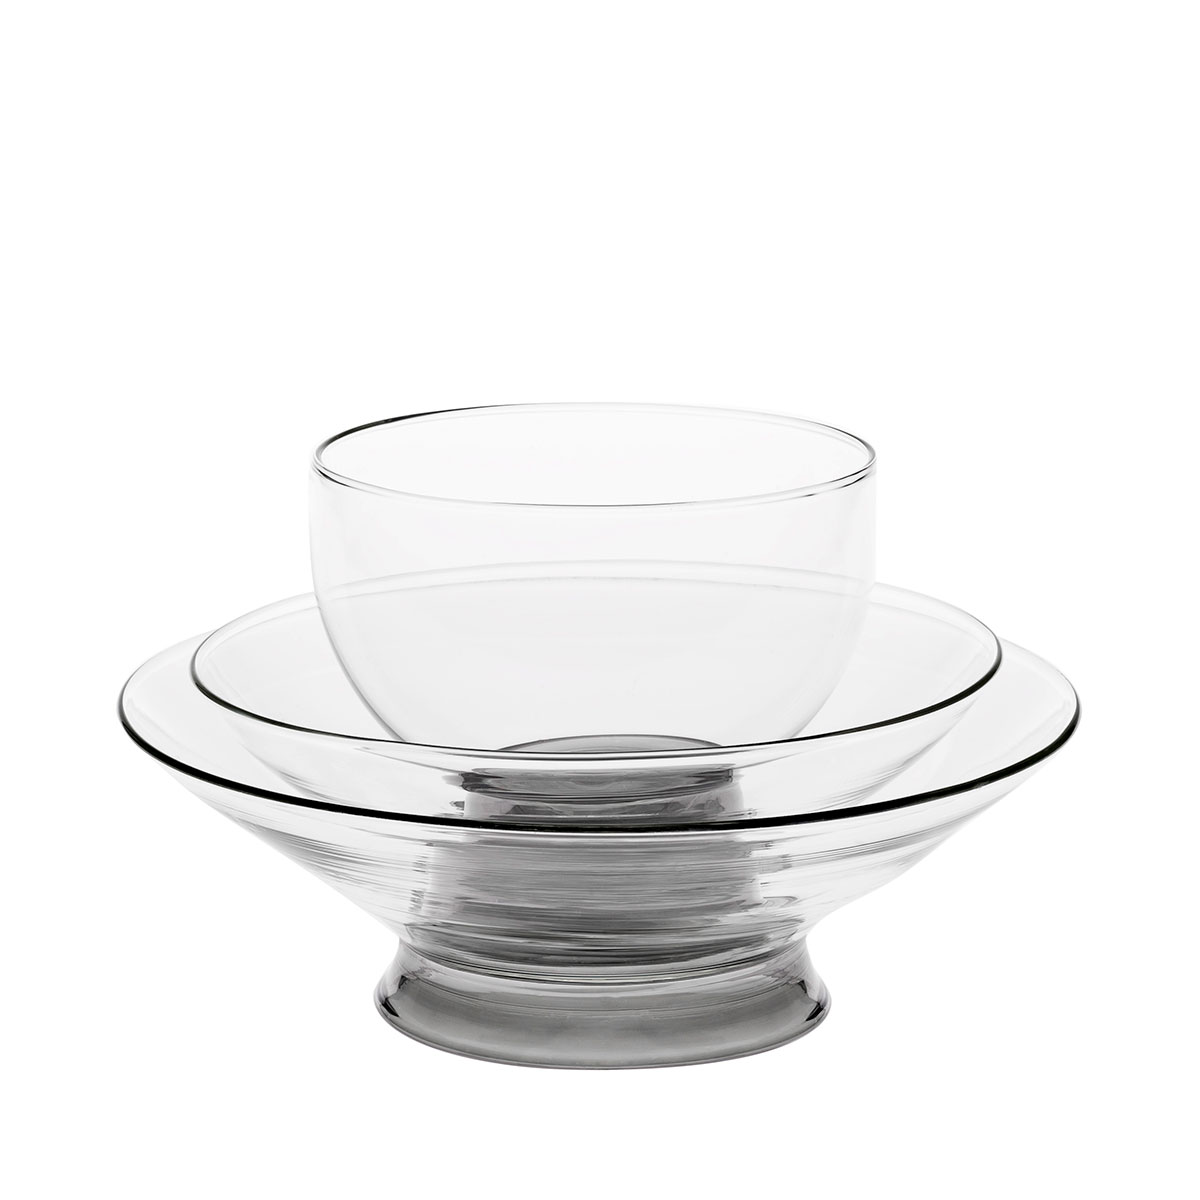 Bowl-and-platter-set-C57-Open-Casa_Rialto